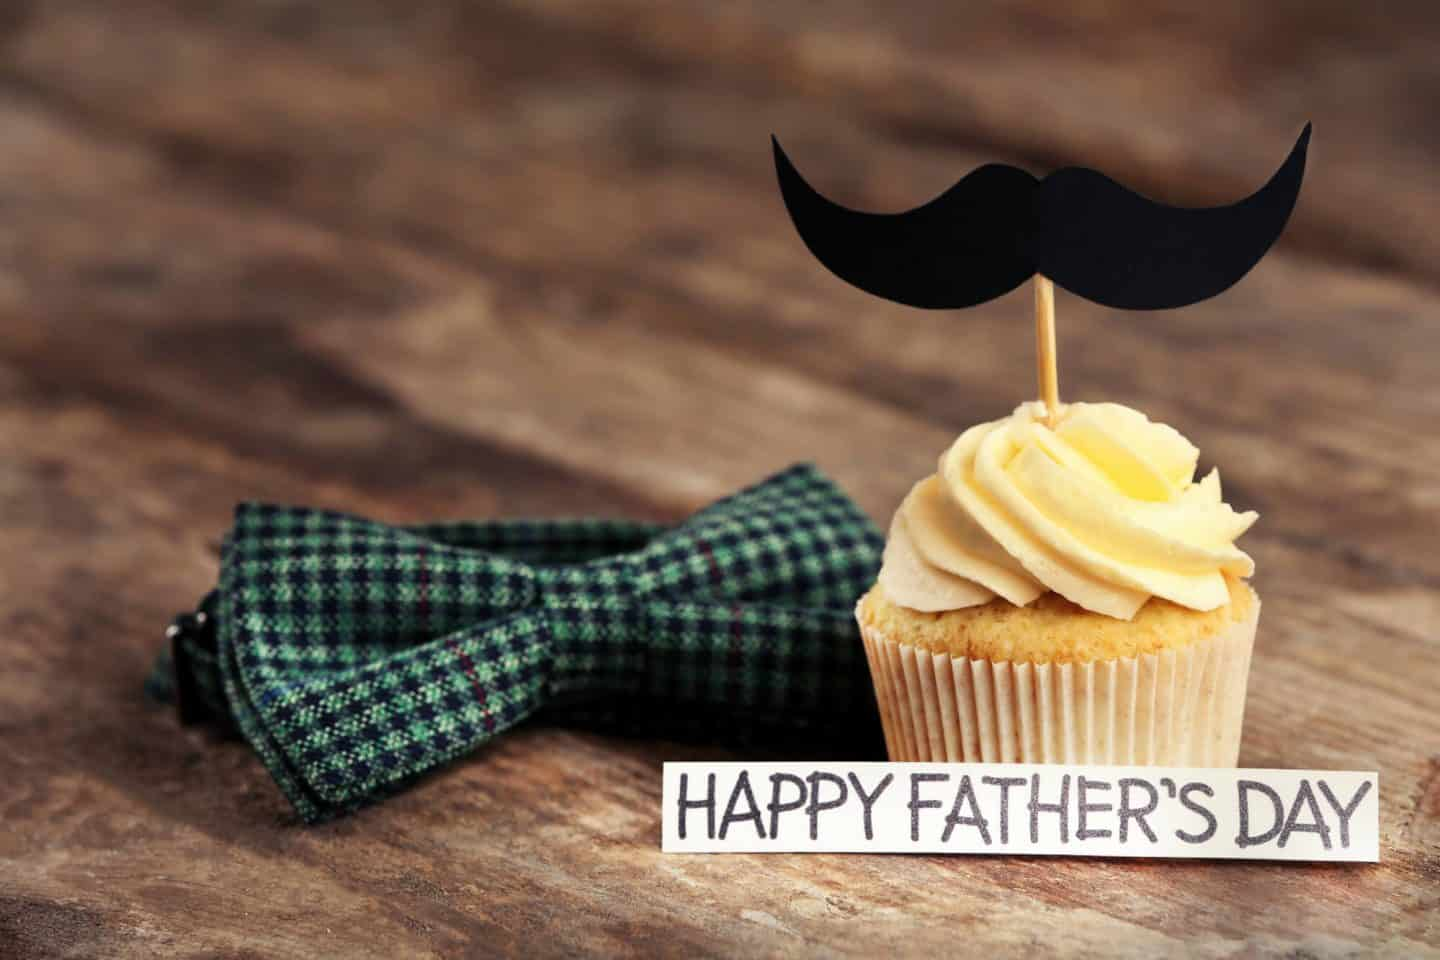 Father's Day Gift Guide To Suit All Dads